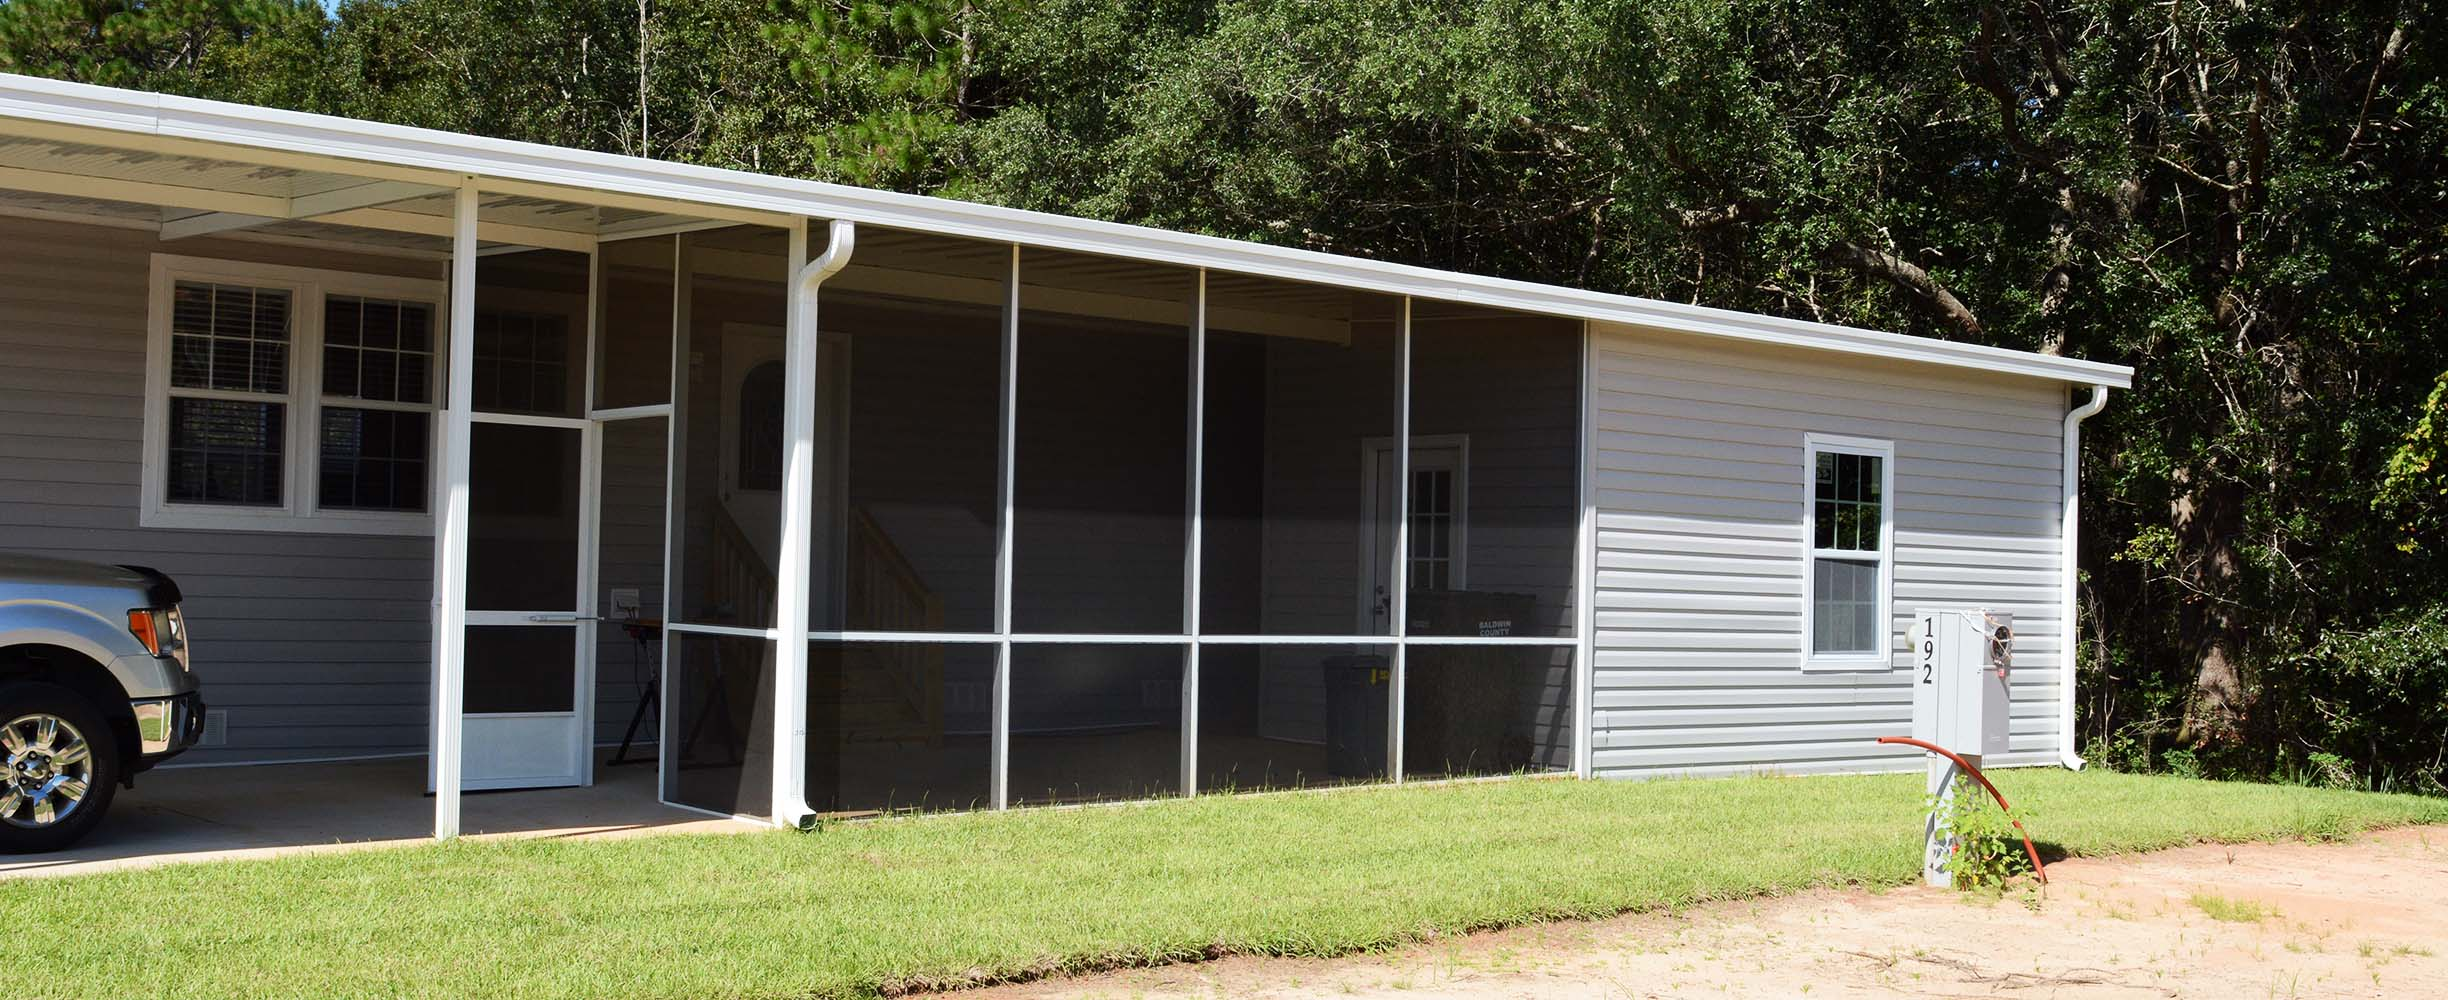 Custom designed and built car port, sunroom and screen room in Foley, Baldwin County, Alabama